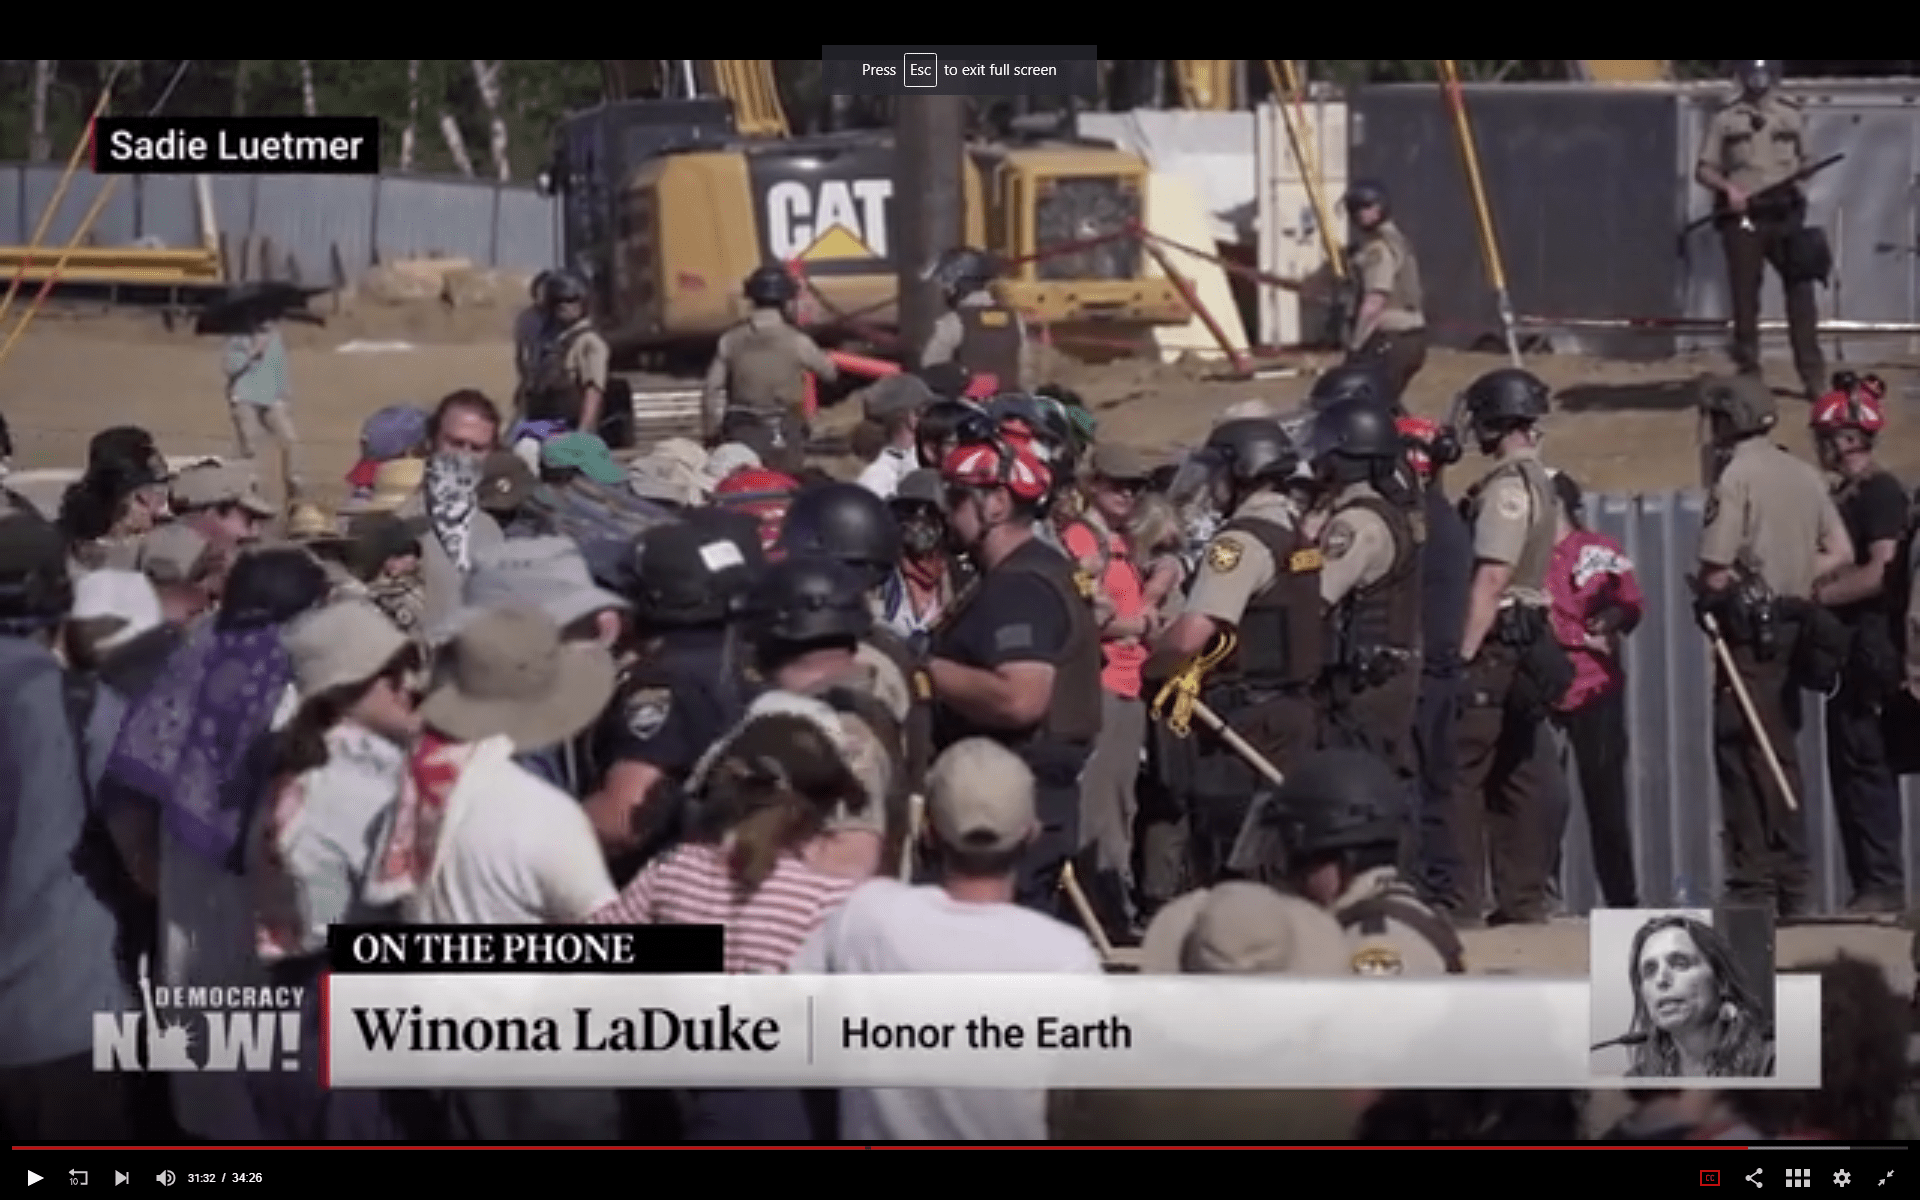 Screen capture from Democracy Now! broadcast on 8 June 2021 from Treaty People Gathering and action to #StopLine3 at Two Inlets site. Video at https://www.democracynow.org/2021/6/8/line_3_protests_treaty_people_gathering